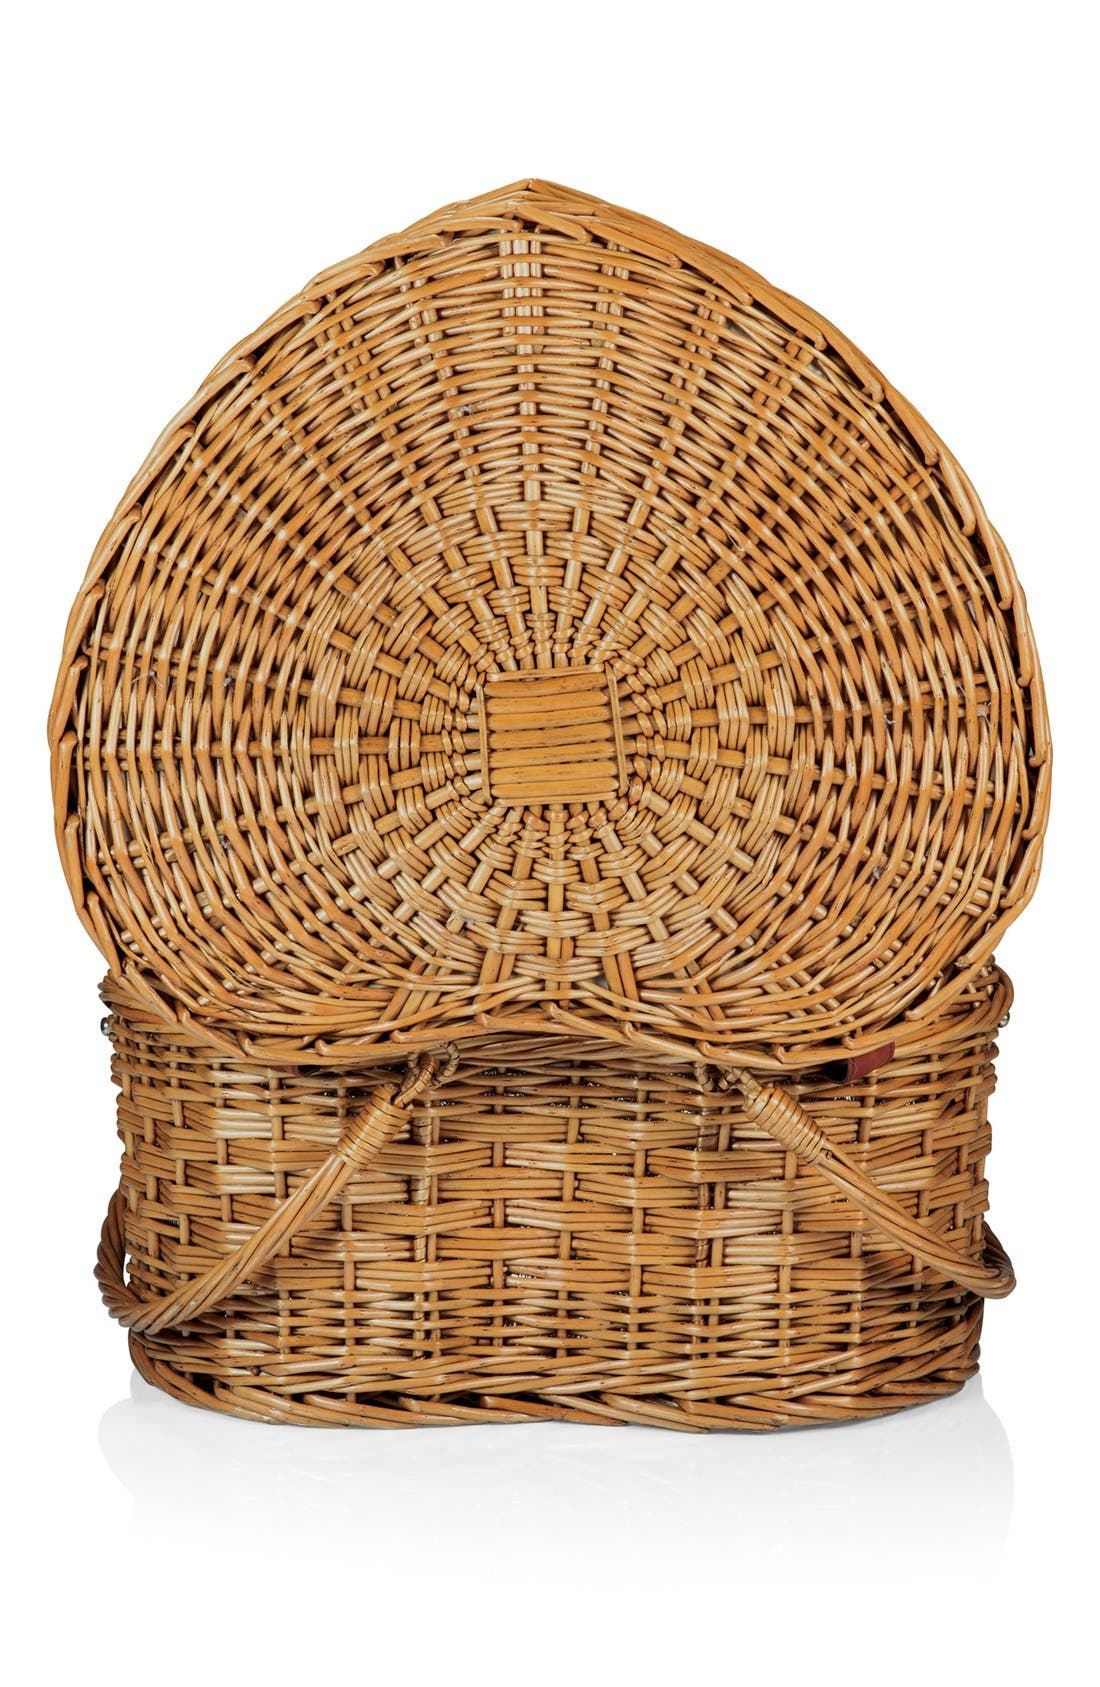 Heart Shaped Wicker Picnic Basket,                             Alternate thumbnail 3, color,                             200